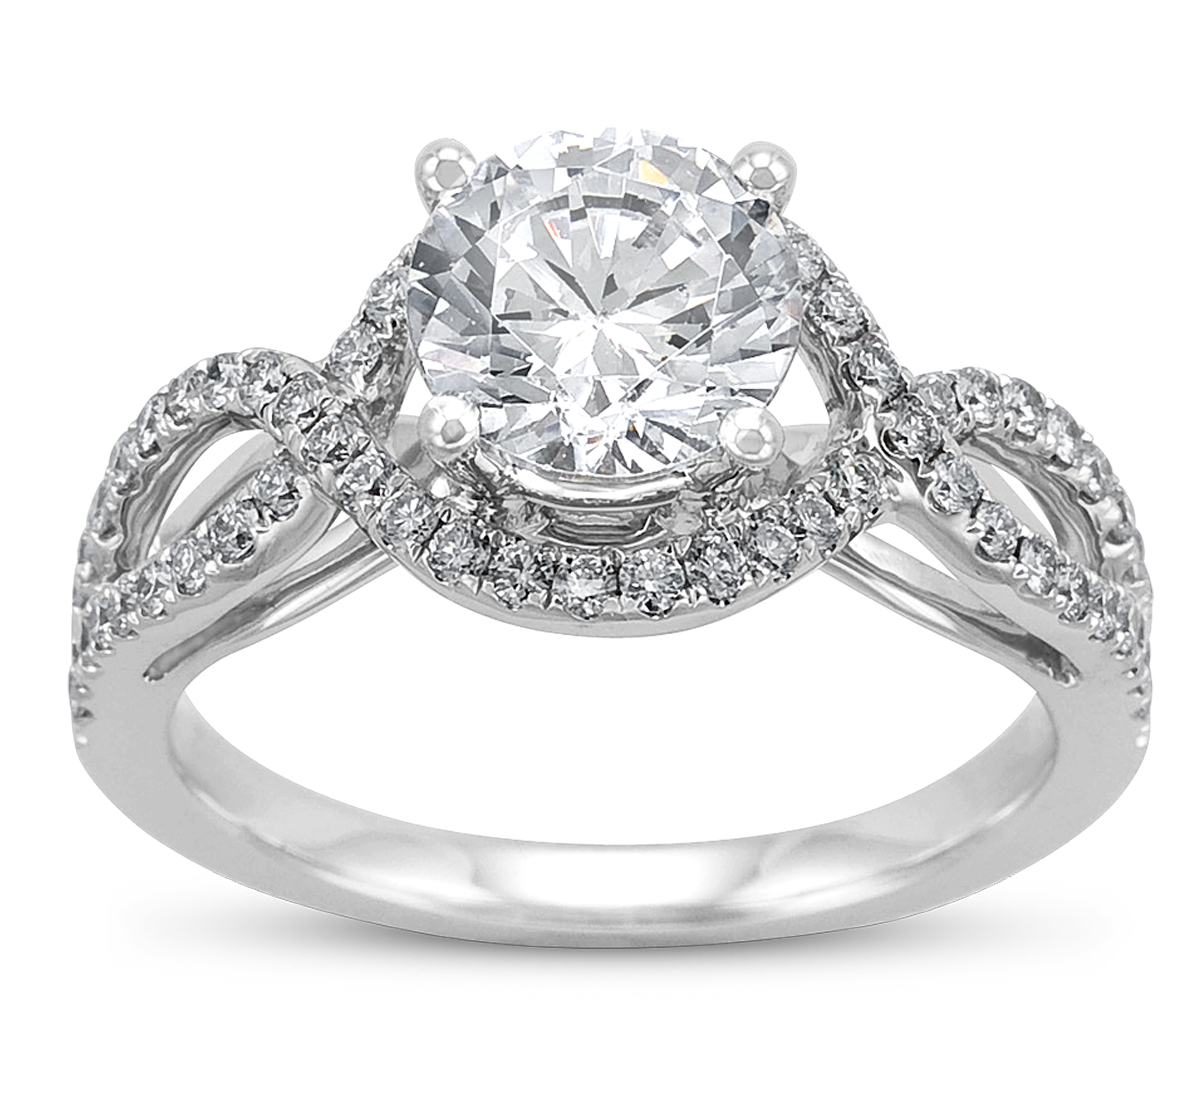 robbins brothers celebrity engagement ring sku 0374153 - Million Dollar Wedding Ring